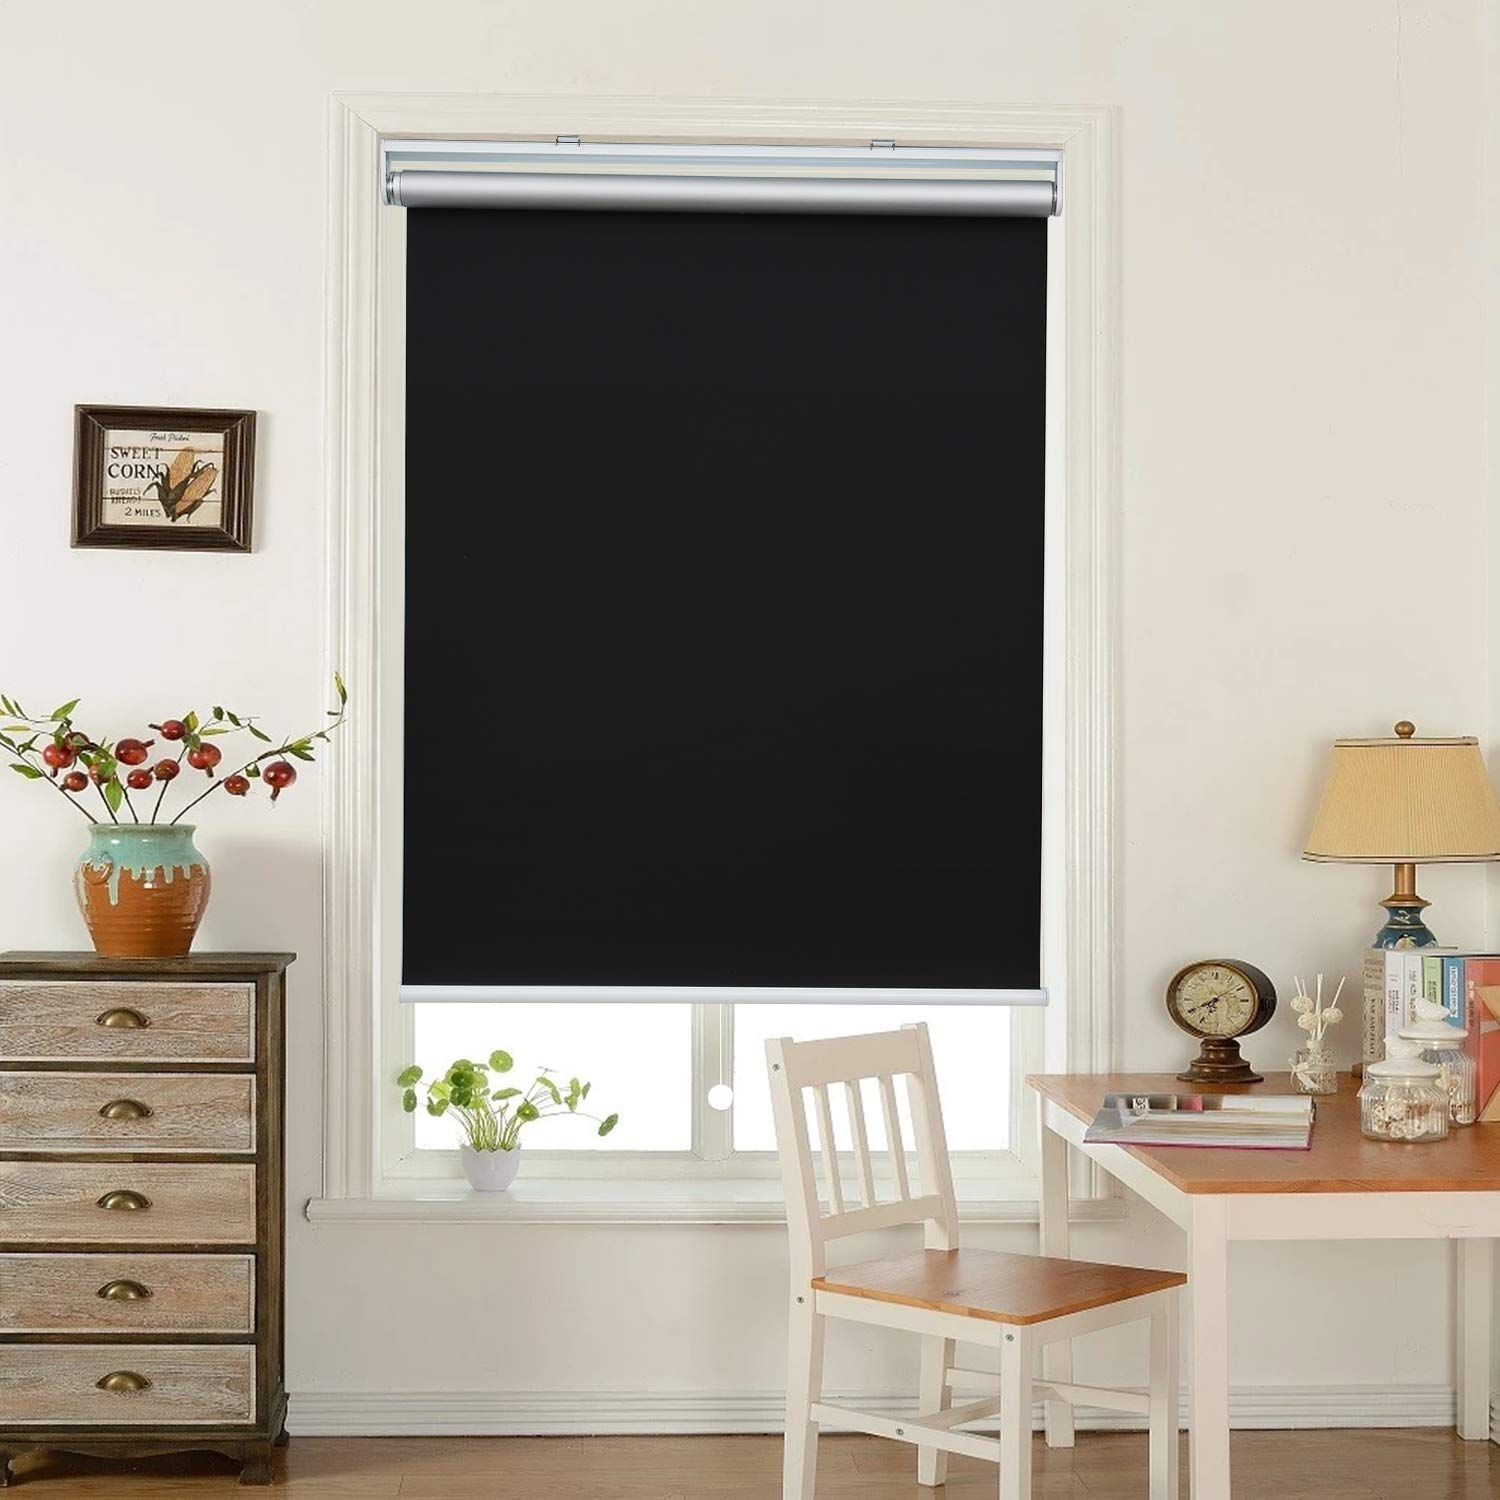 "HOMEDEMO Window Blinds and Shades Blackout Roller Shades Cordless and Room Darkening Blinds Black 27"" W x 72"" H for Windows, Bedroom, Home"